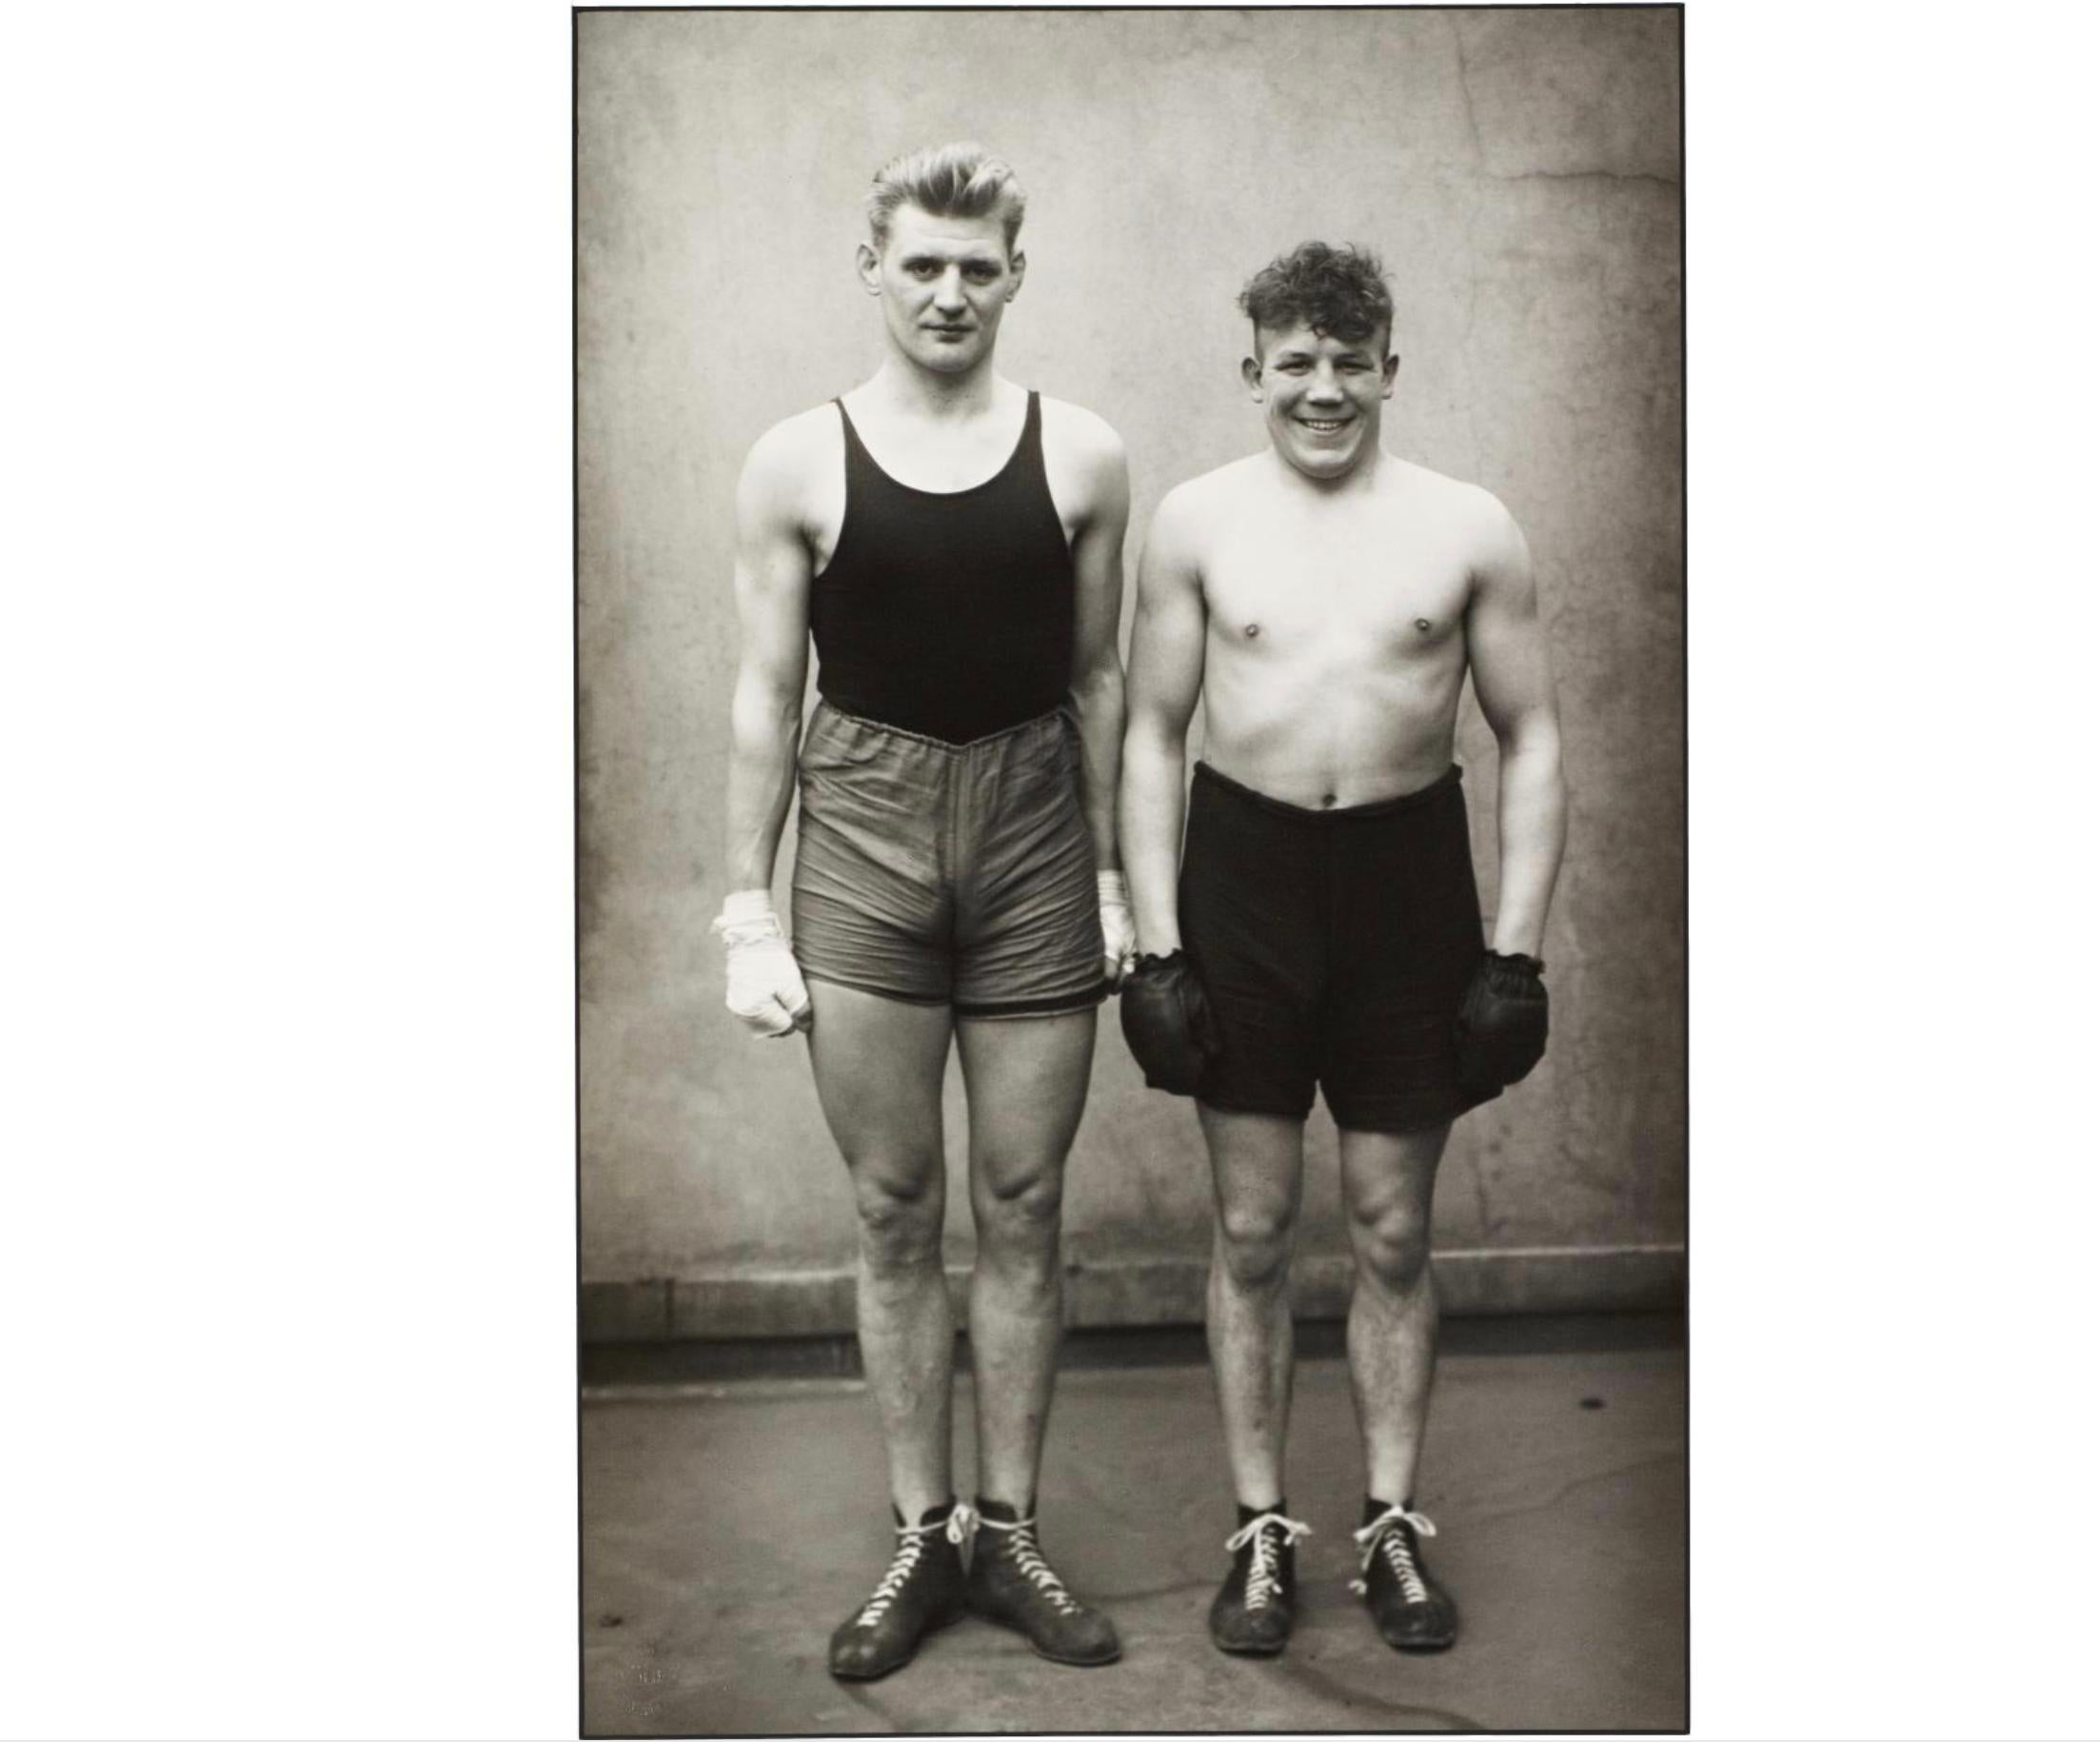 Boxers by August Sander